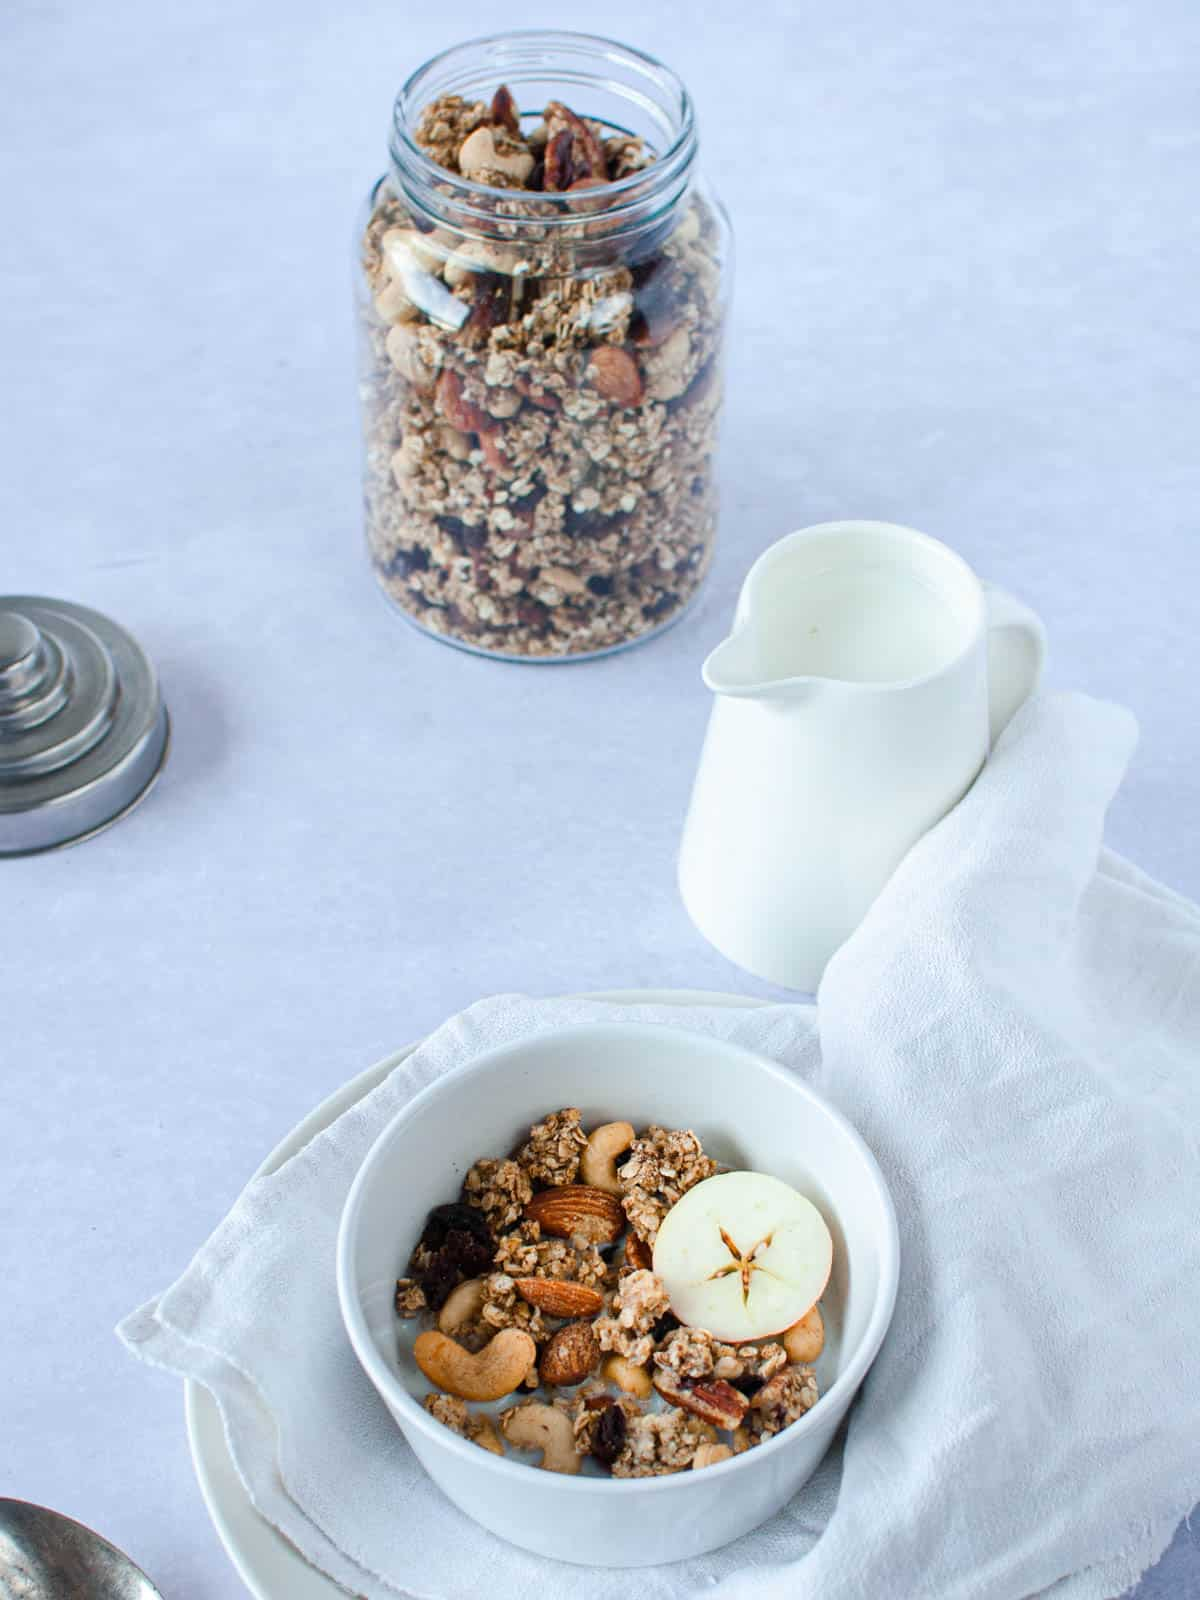 Hearty granola is a beautyful way to start e new day. It's packed with fiber and proteins.